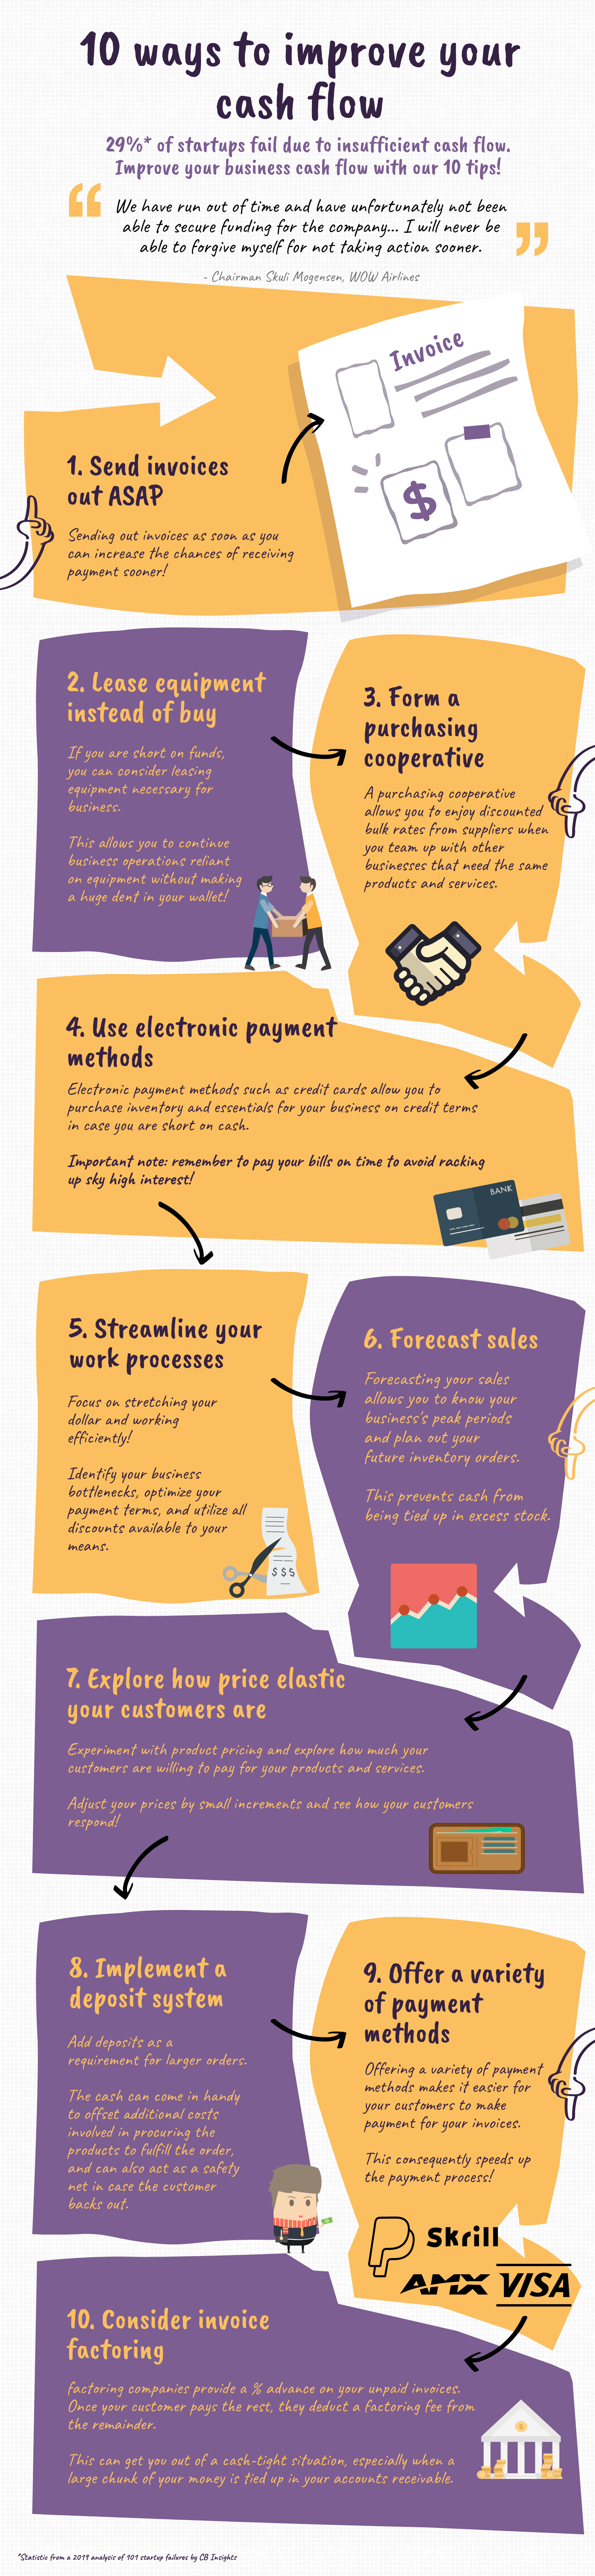 10 methods to improve cash flow are captured in this info graphic, including optimizing business processes and implementing a deposit system for bigger orders